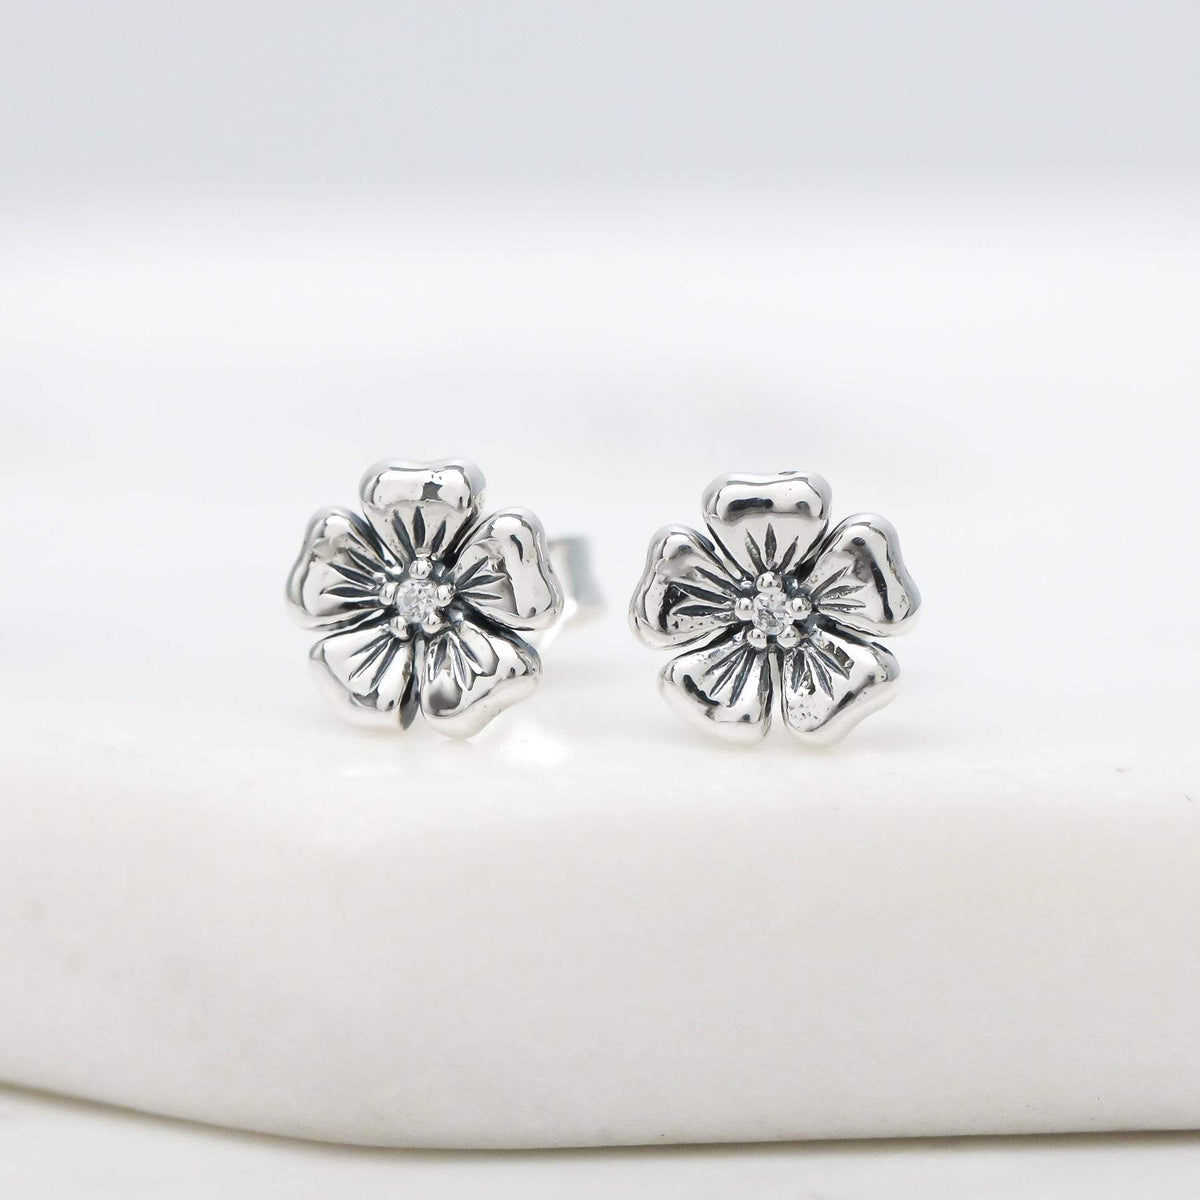 Midsummer Star Earrings Dioscuri Studs